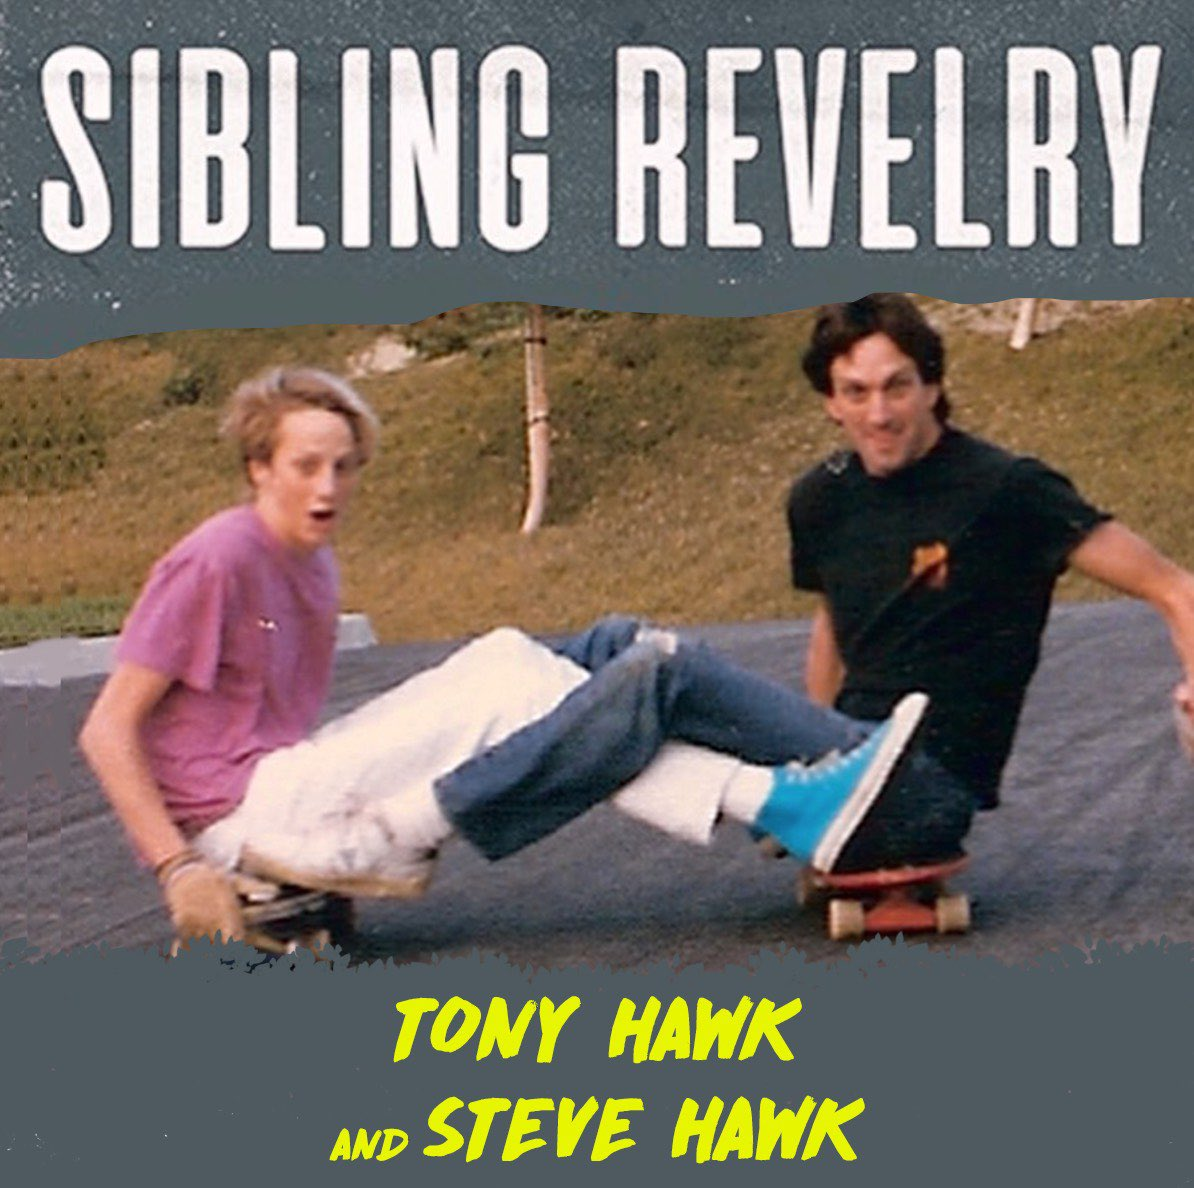 My brother and I are featured in the new episode of @siblingrevelry with Kate & Oliver Hudson. Hear stories of what it's like to be simultaneously supported and tortured by your older sibling, which I'm sure many of you have experienced first-hand: apple.co/sibling